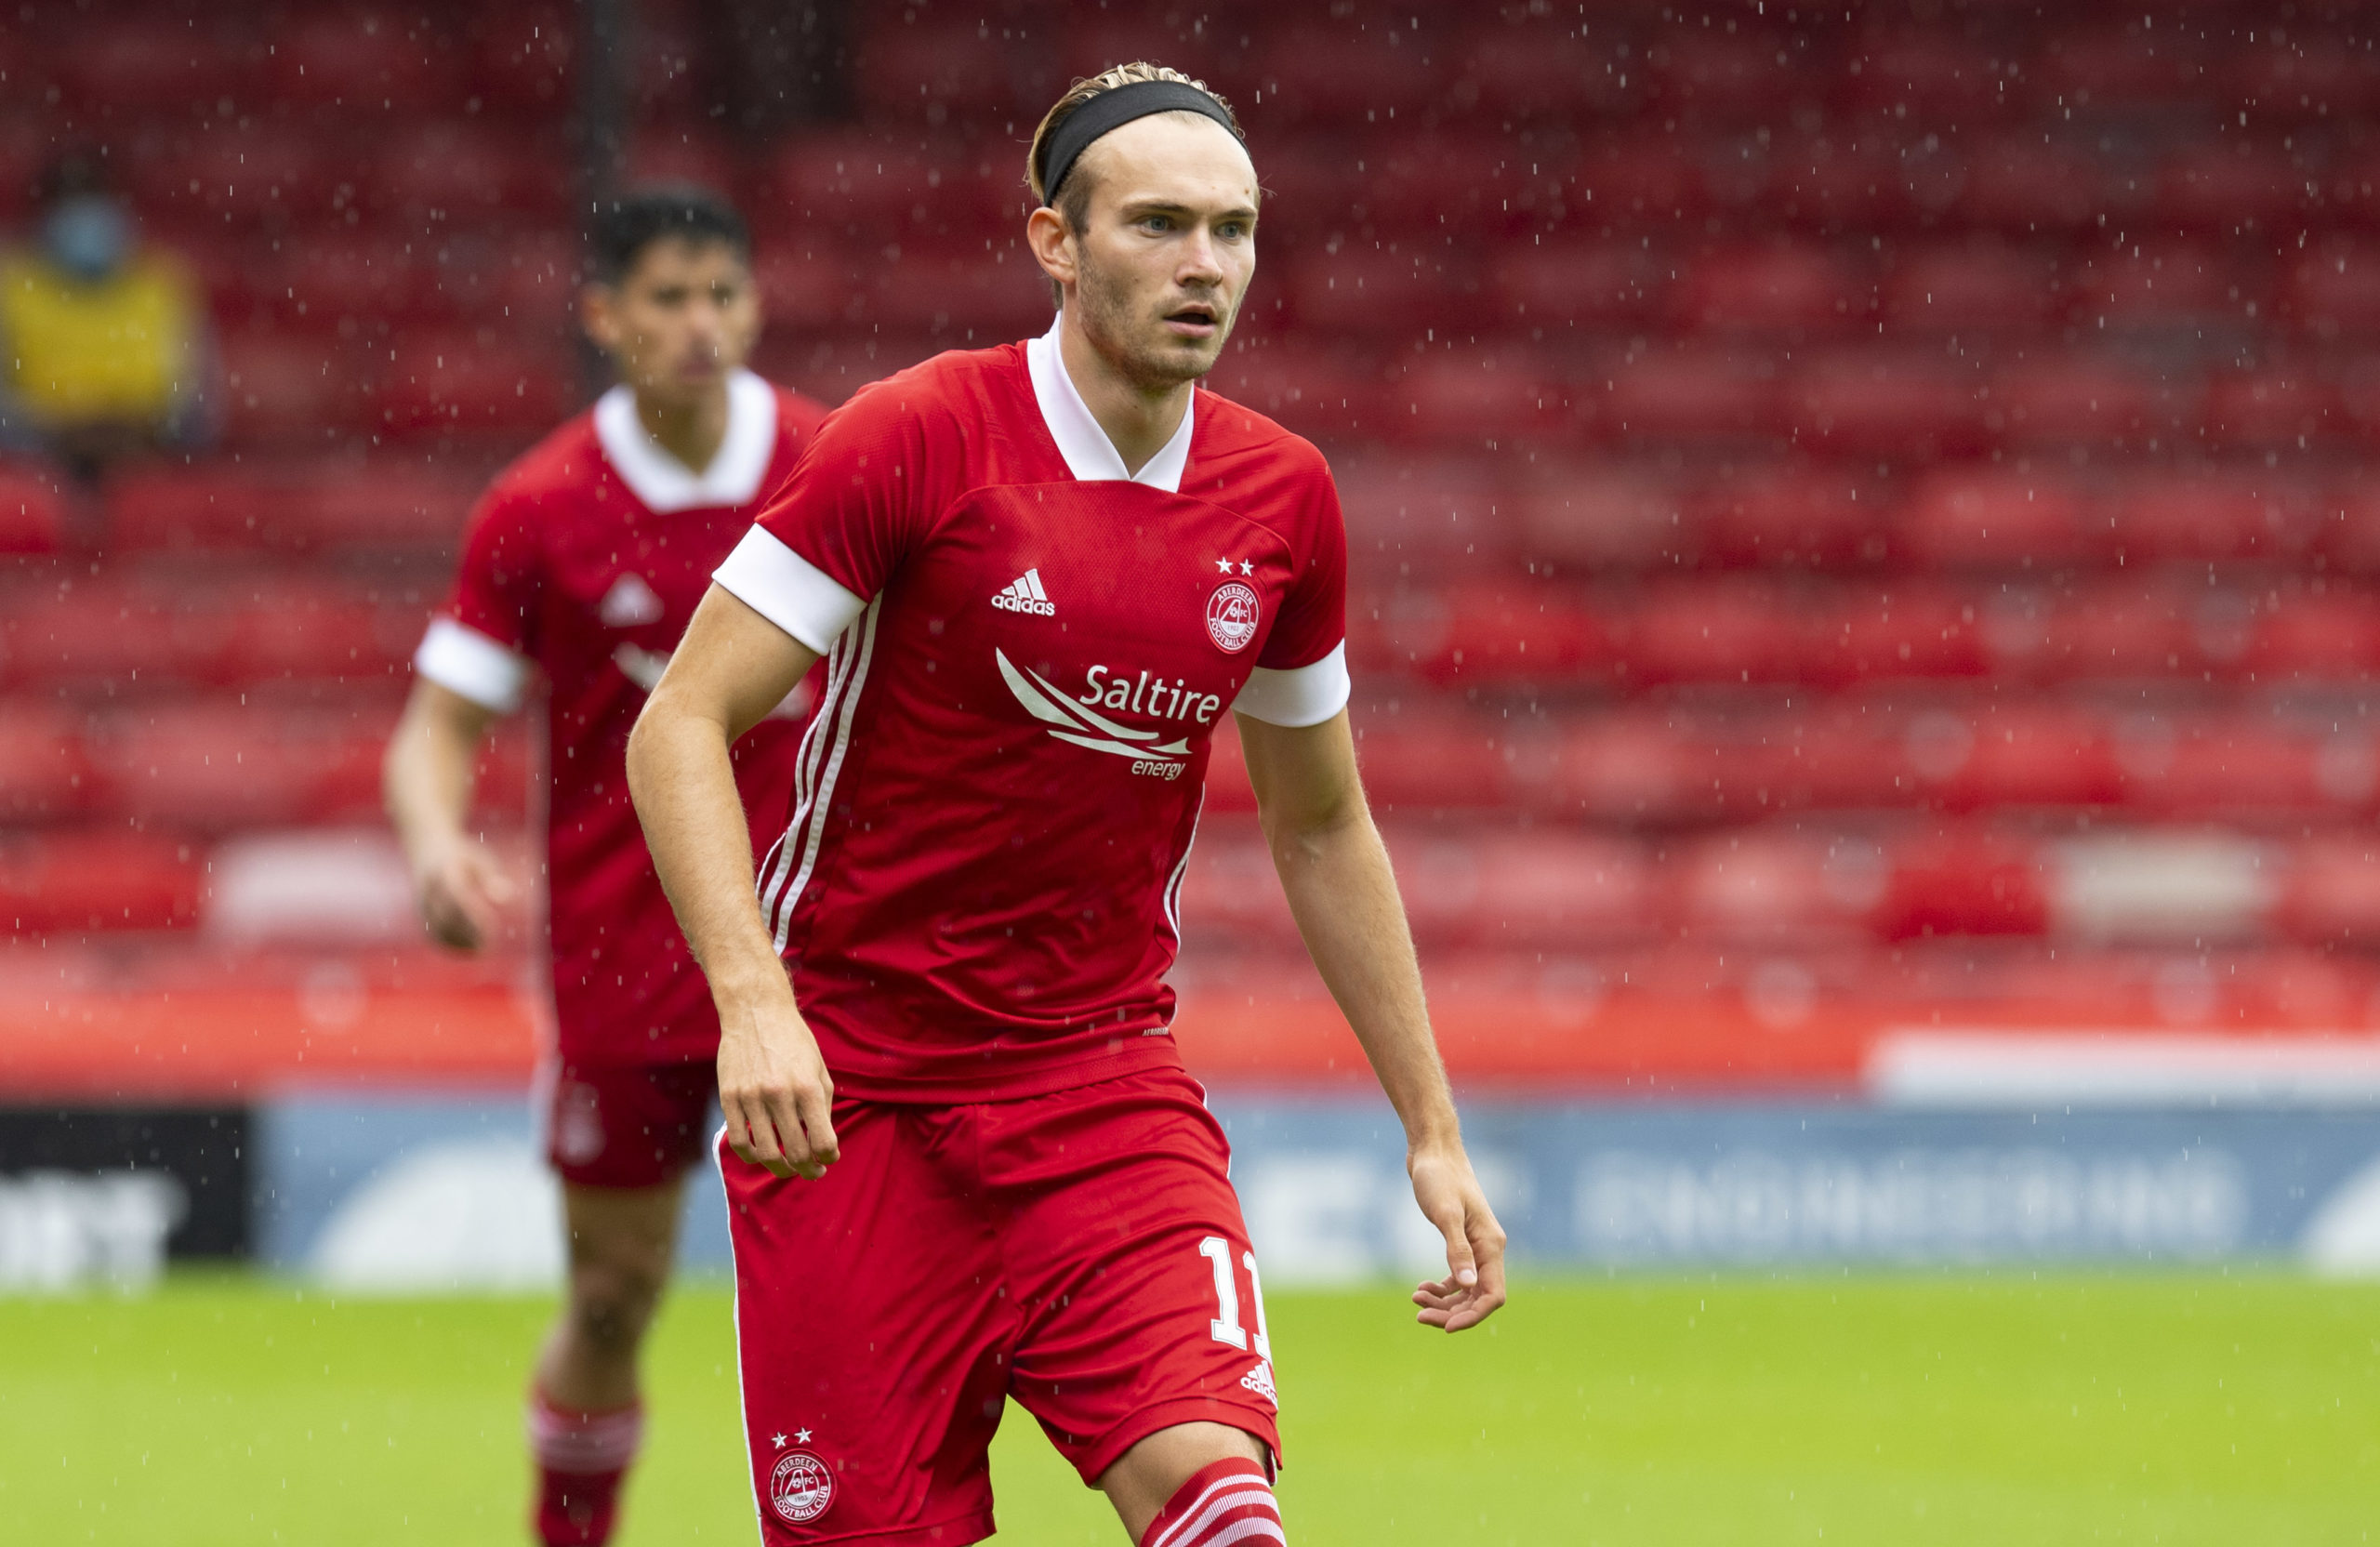 Aberdeen midfielder Ryan Hedges